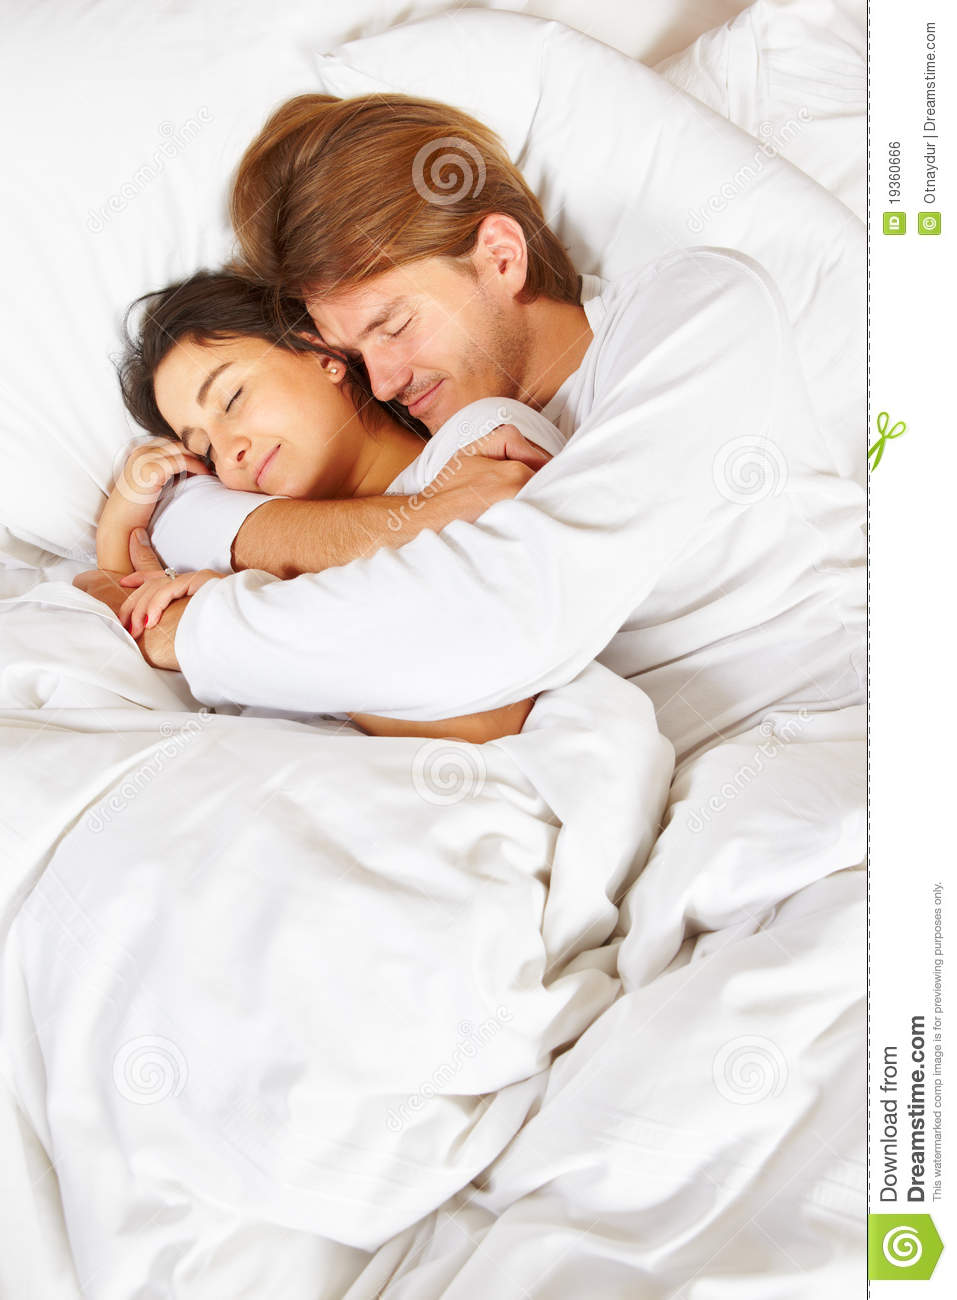 Royalty Free Stock Photo  Download Couple Showing Romance On Bed. Couple Showing Romance On Bed Royalty Free Stock Image   Image